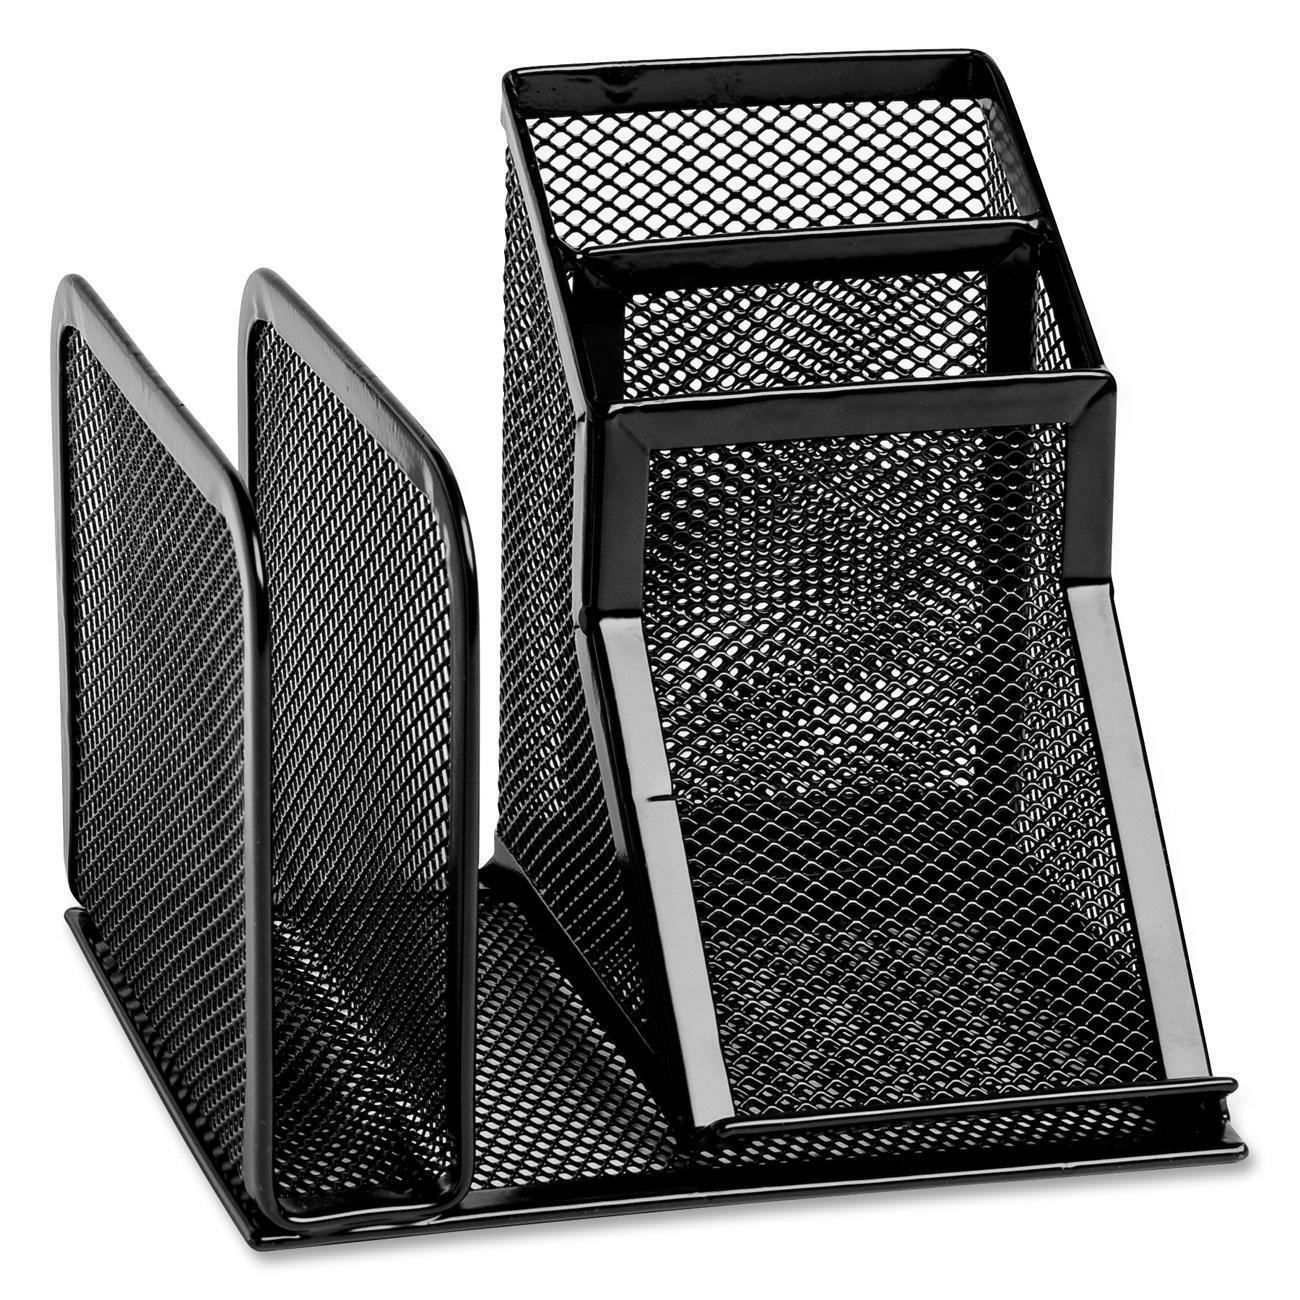 Desktop Organizer Keeps You Organized And Your Supplies Close At Hand Made Of Durable Rolled Mesh Steel The Unique Criss Crossed Design Desk